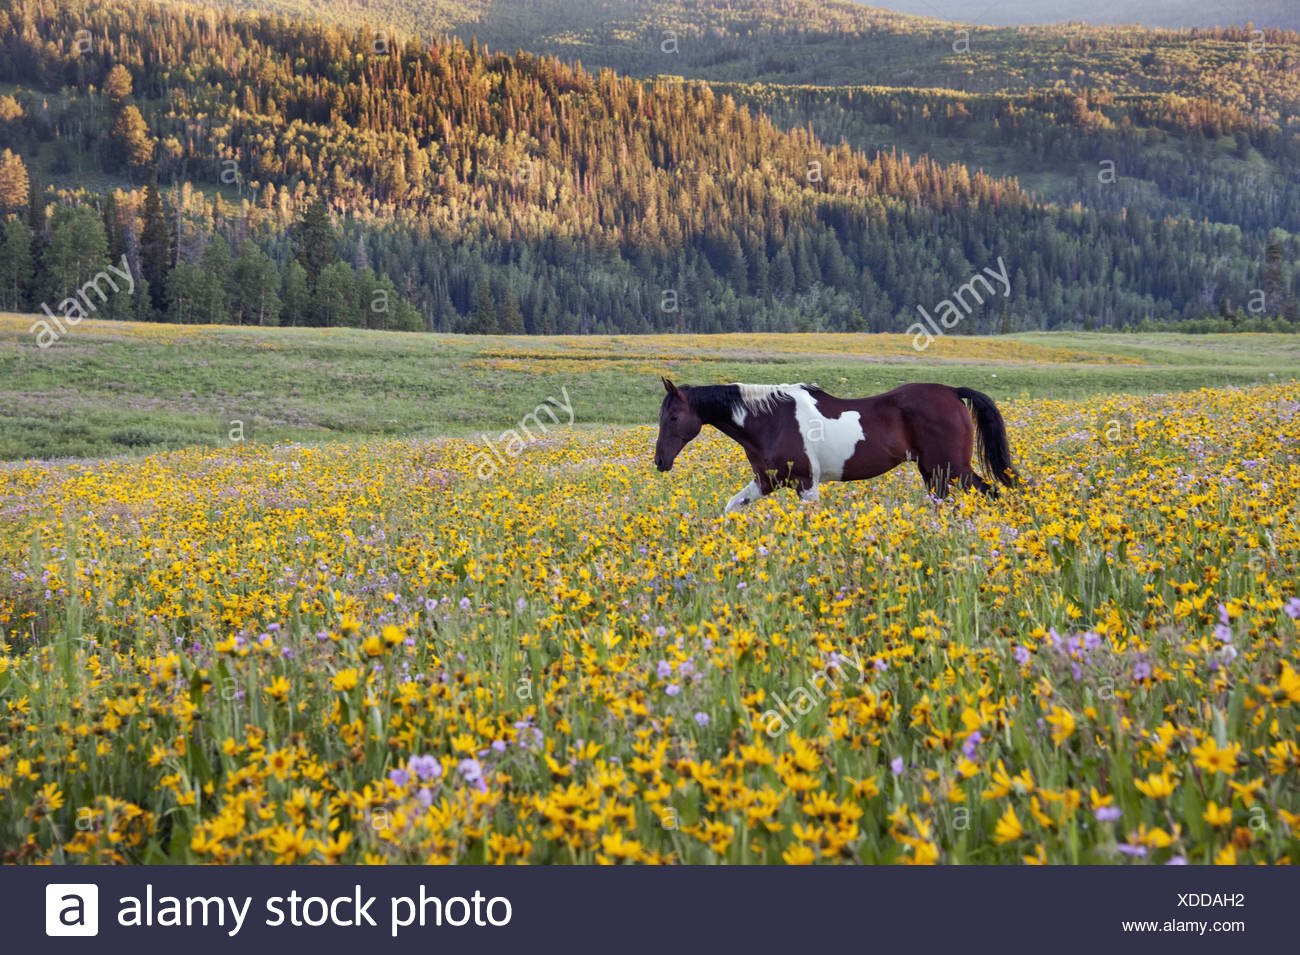 Horse in a field of wildflowers Uinta Mountains Utah - Stock Image